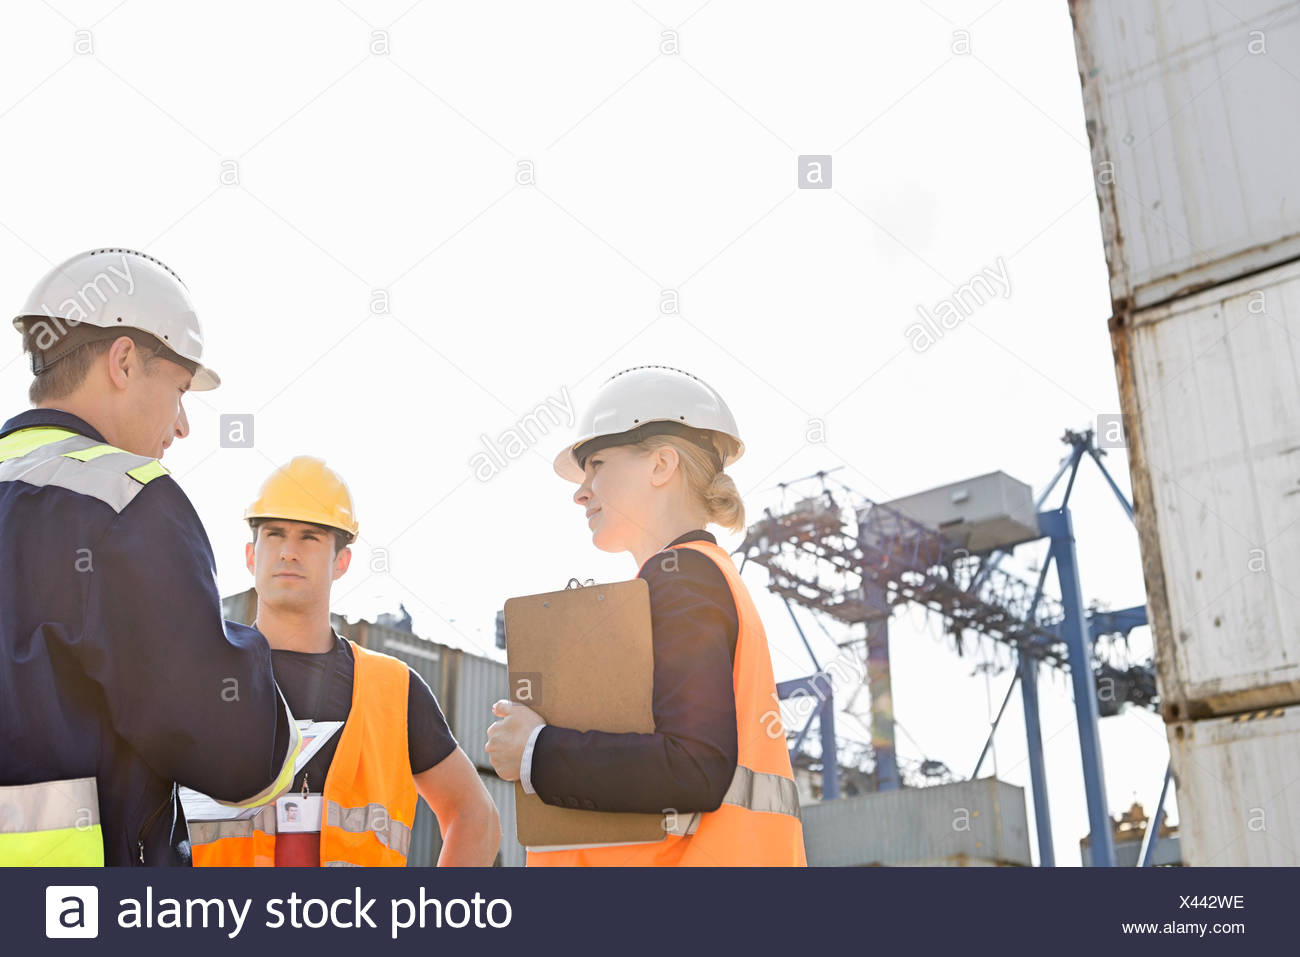 Workers discussing in shipping yard - Stock Image